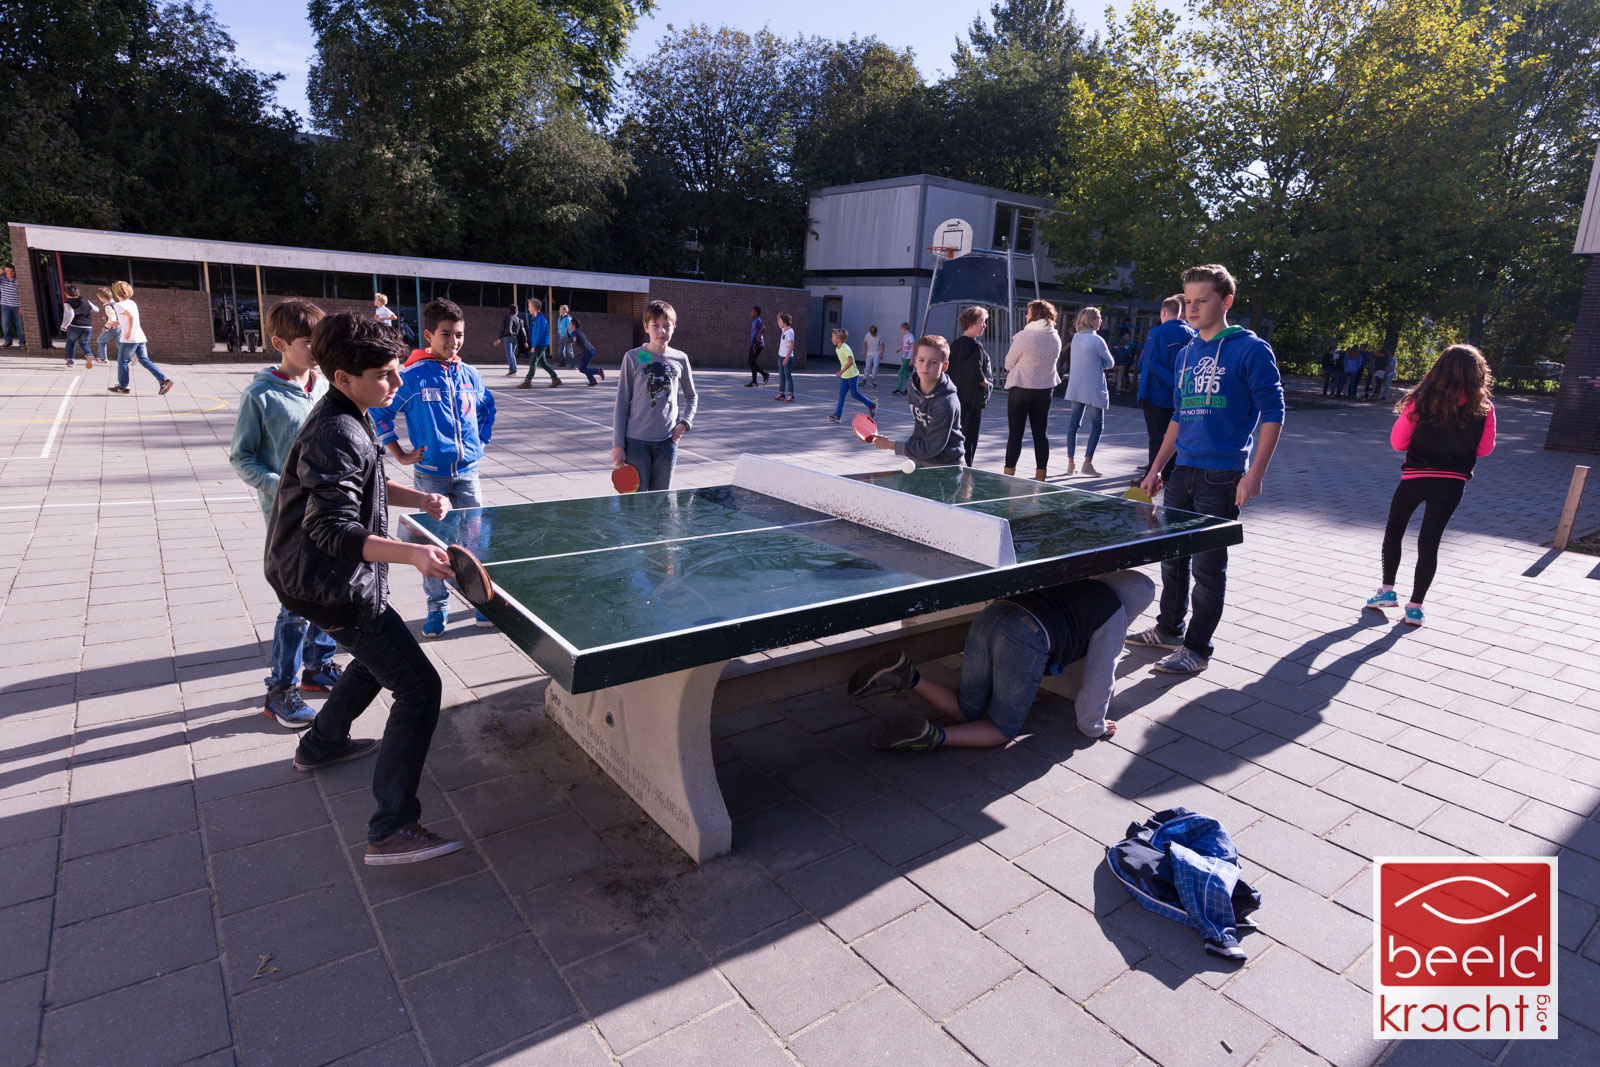 Two boys at school, playing tabletennis during the break.